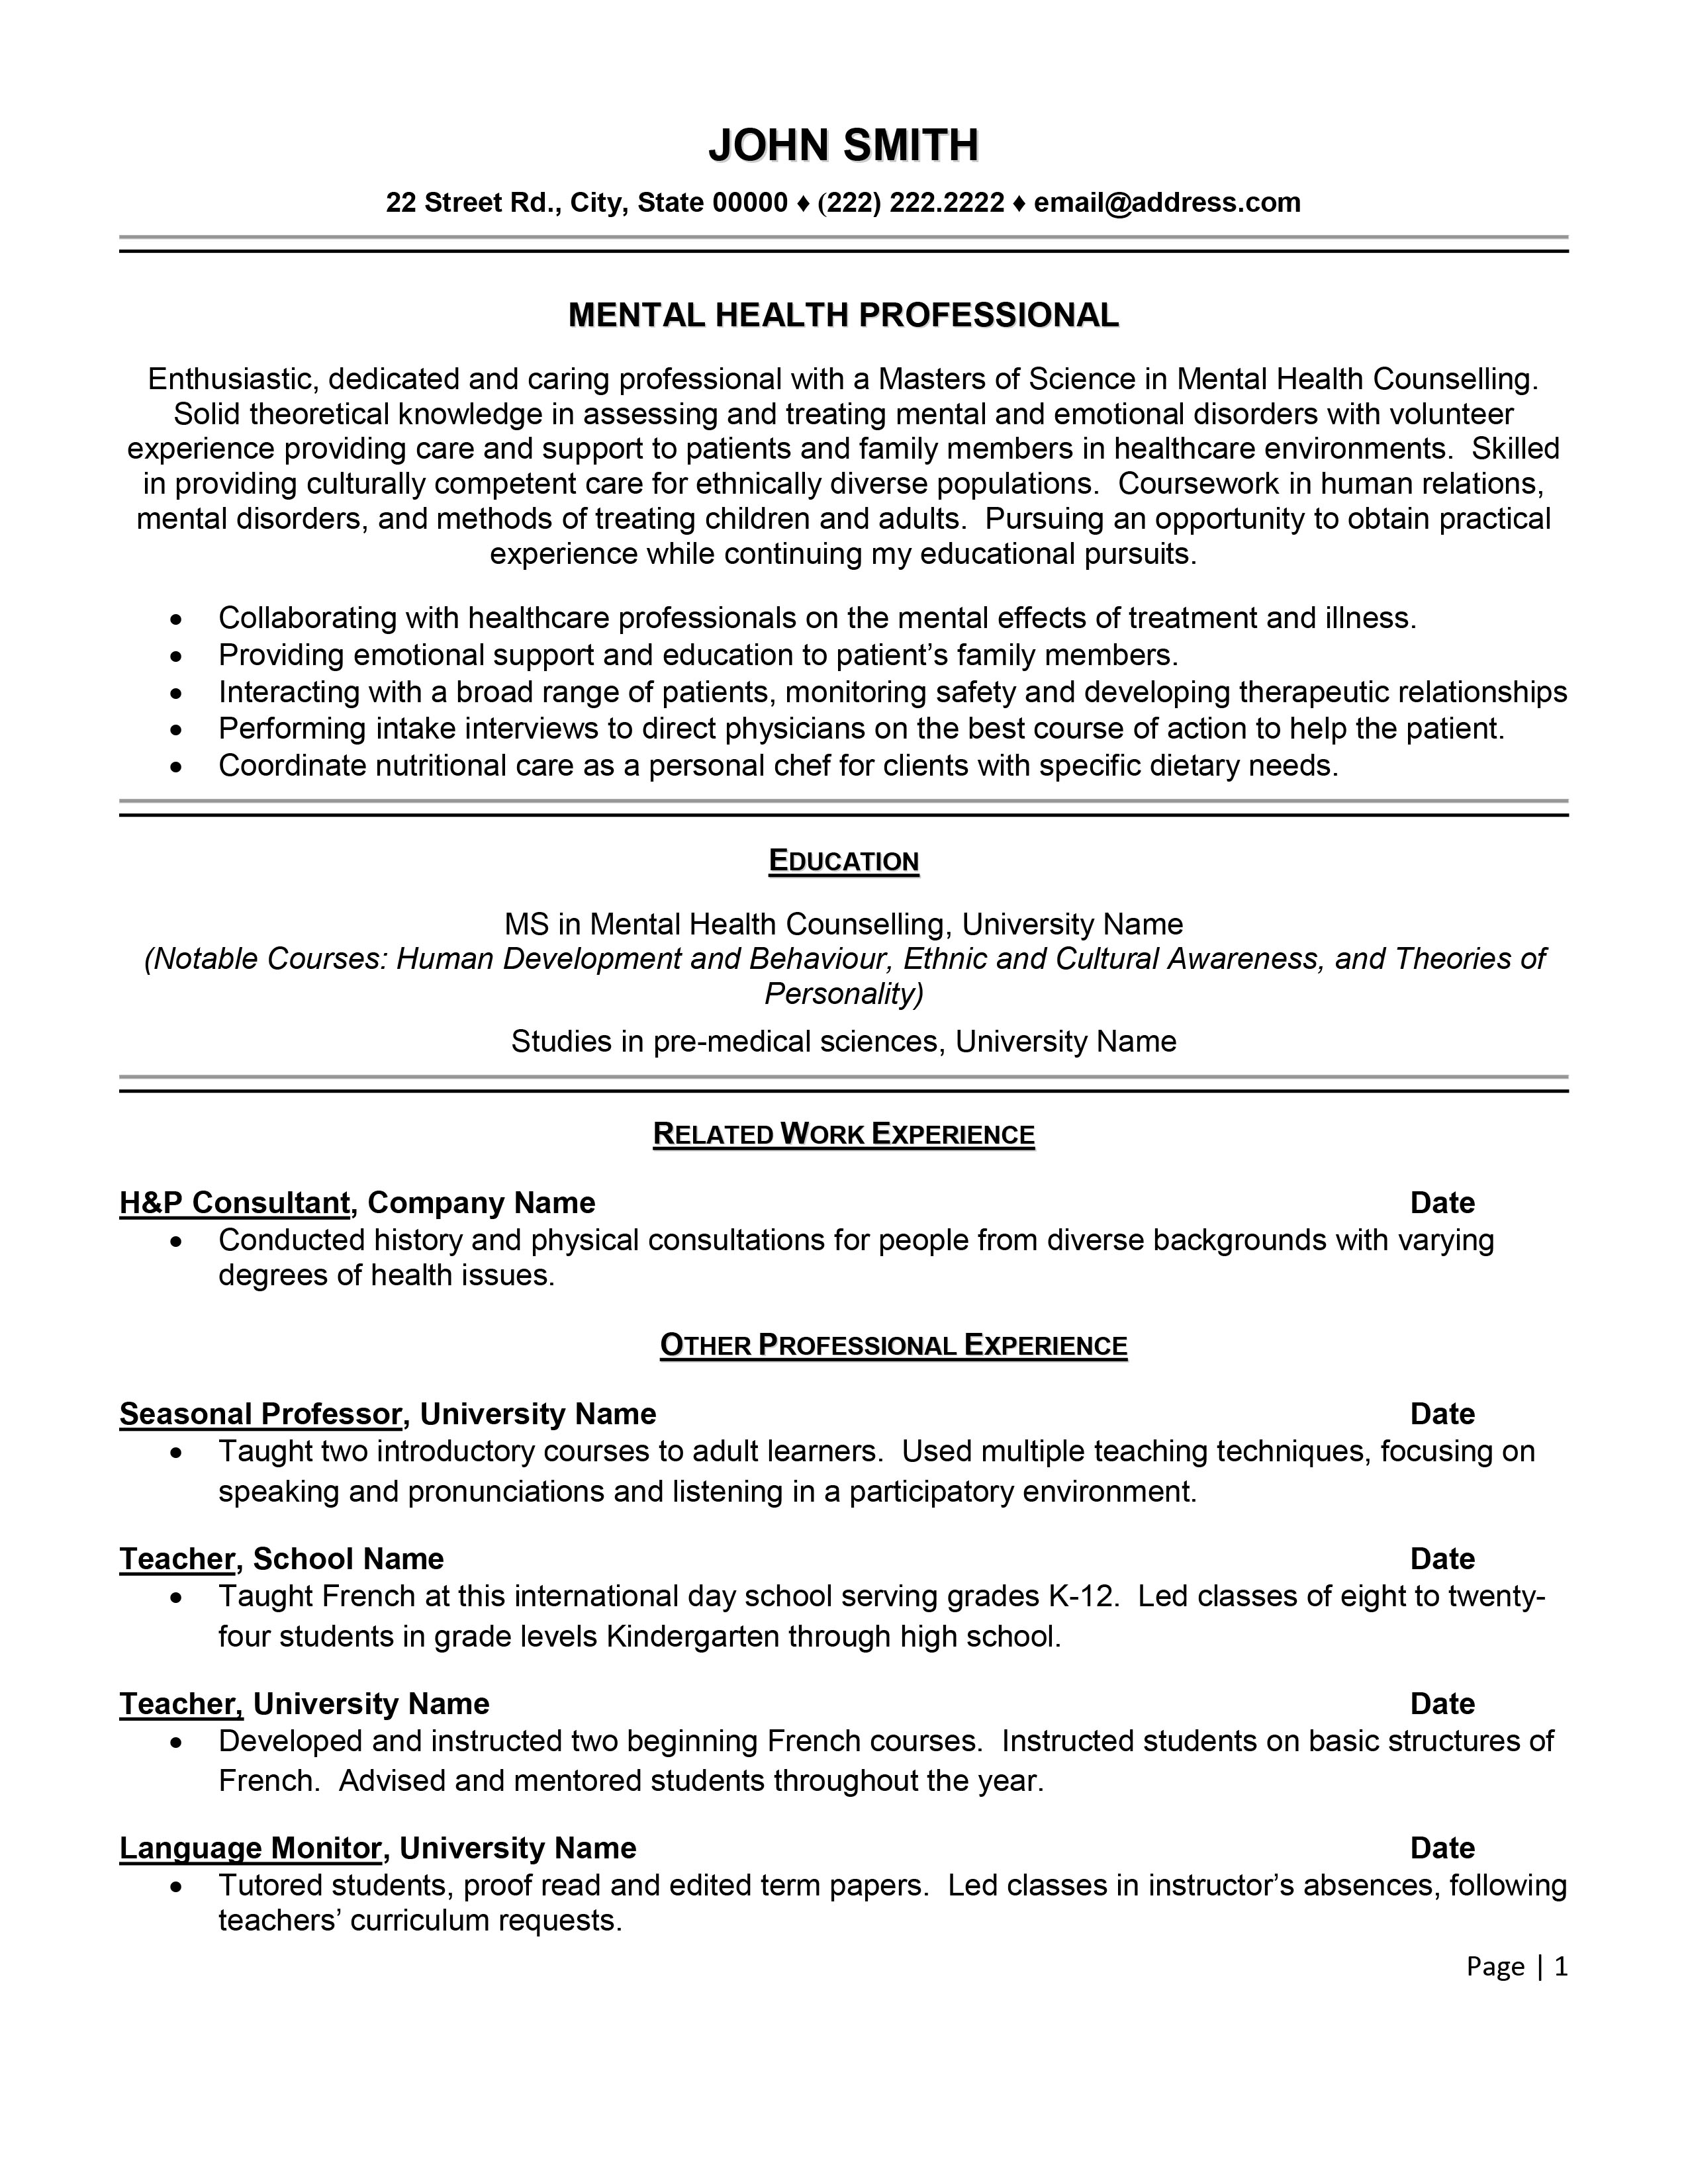 resume examples for mental health professionals